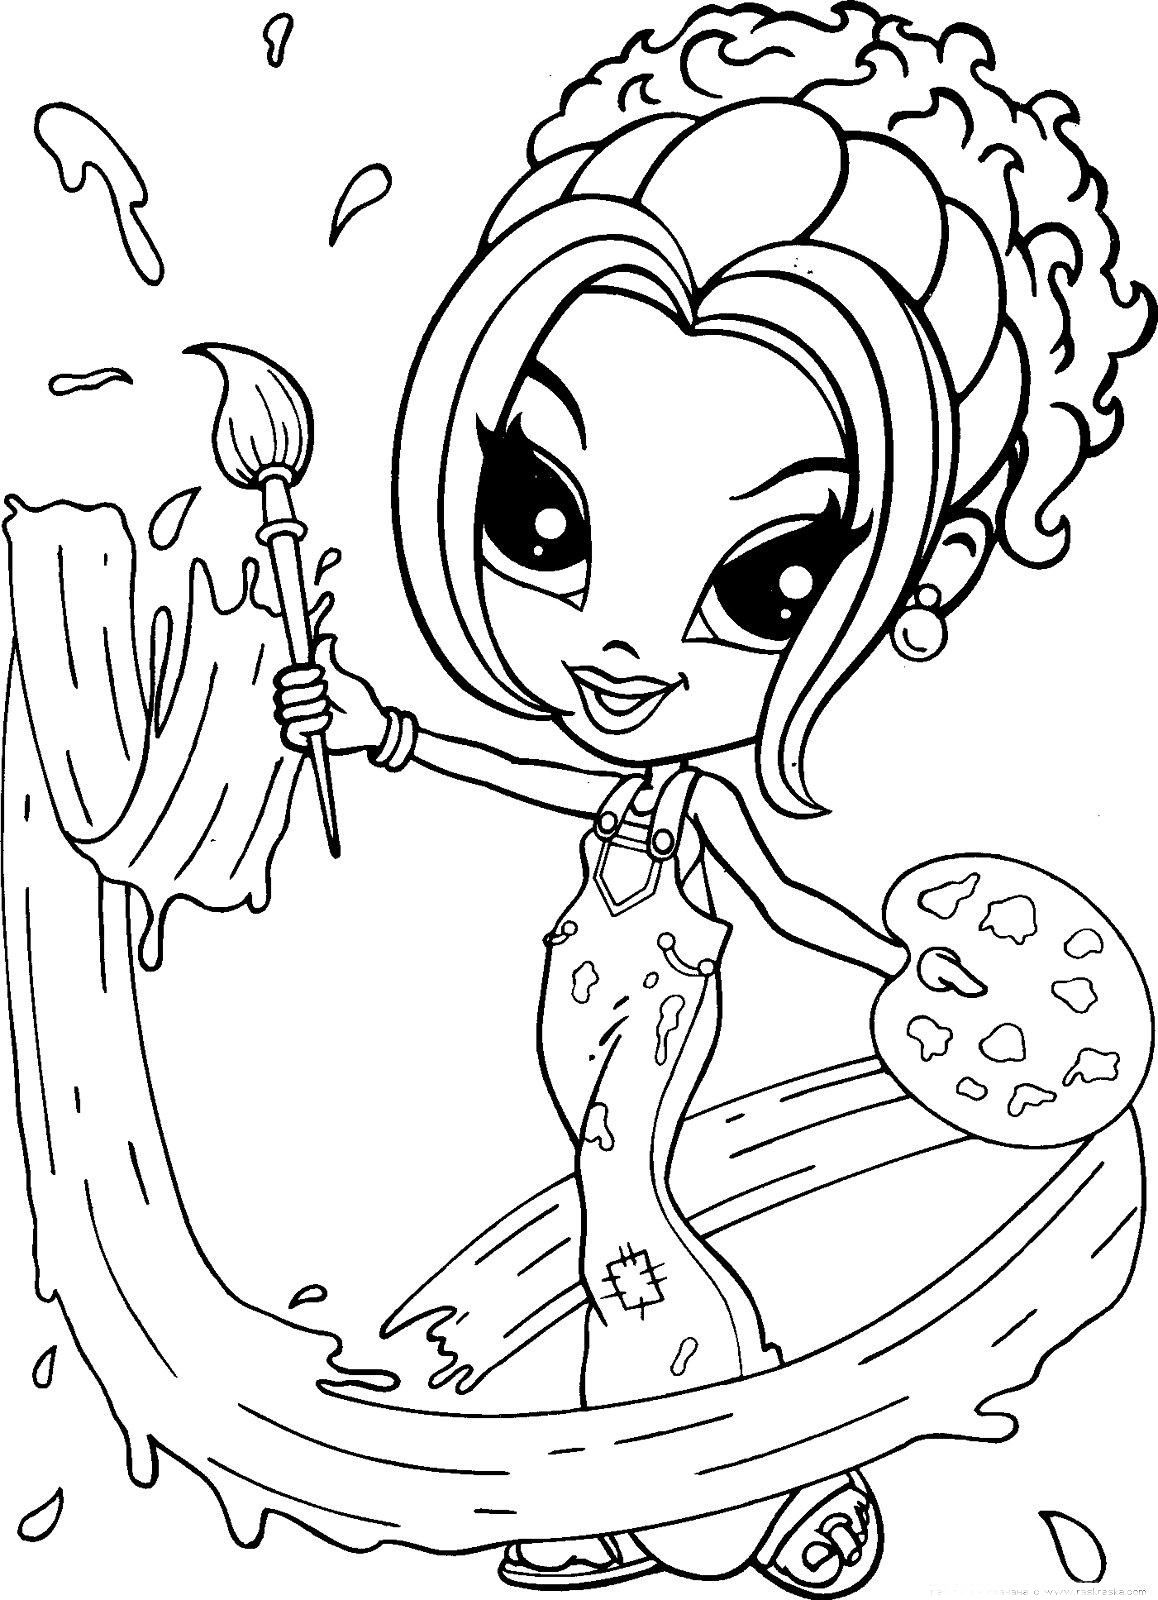 Lisa frank coloring pages to download and print for free Lisa